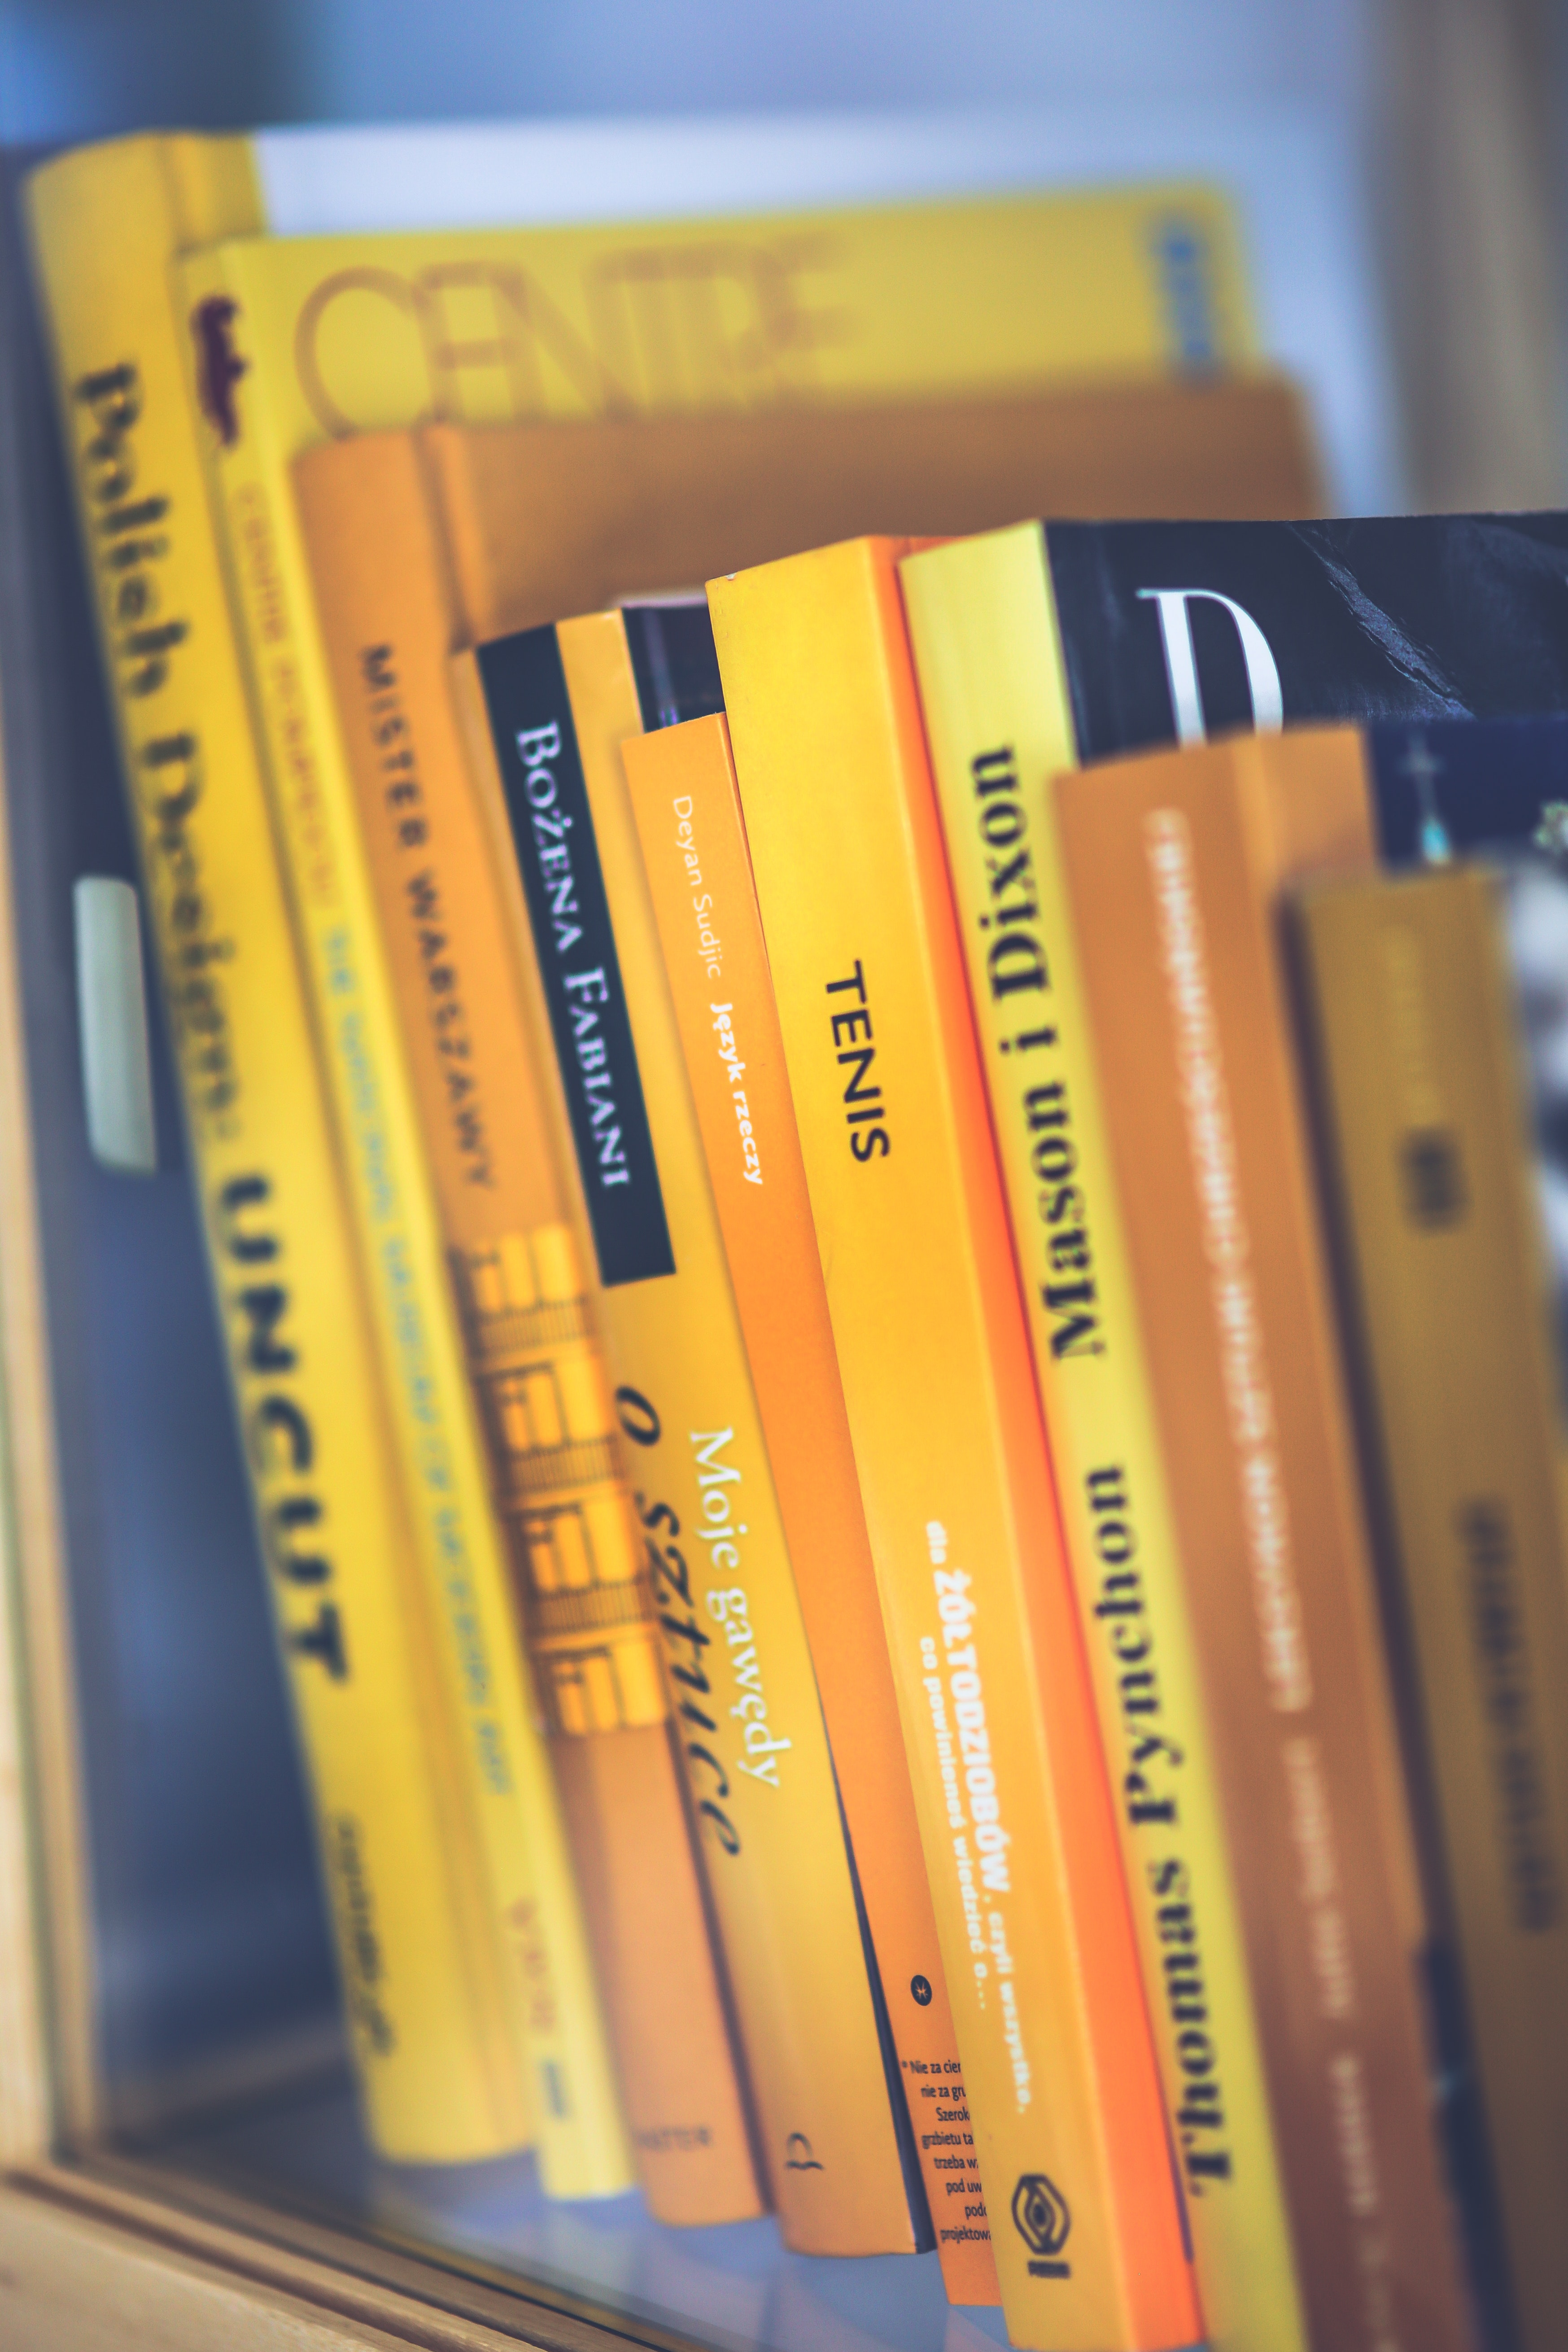 Only yellow books, Book, Library, University, Text, HQ Photo